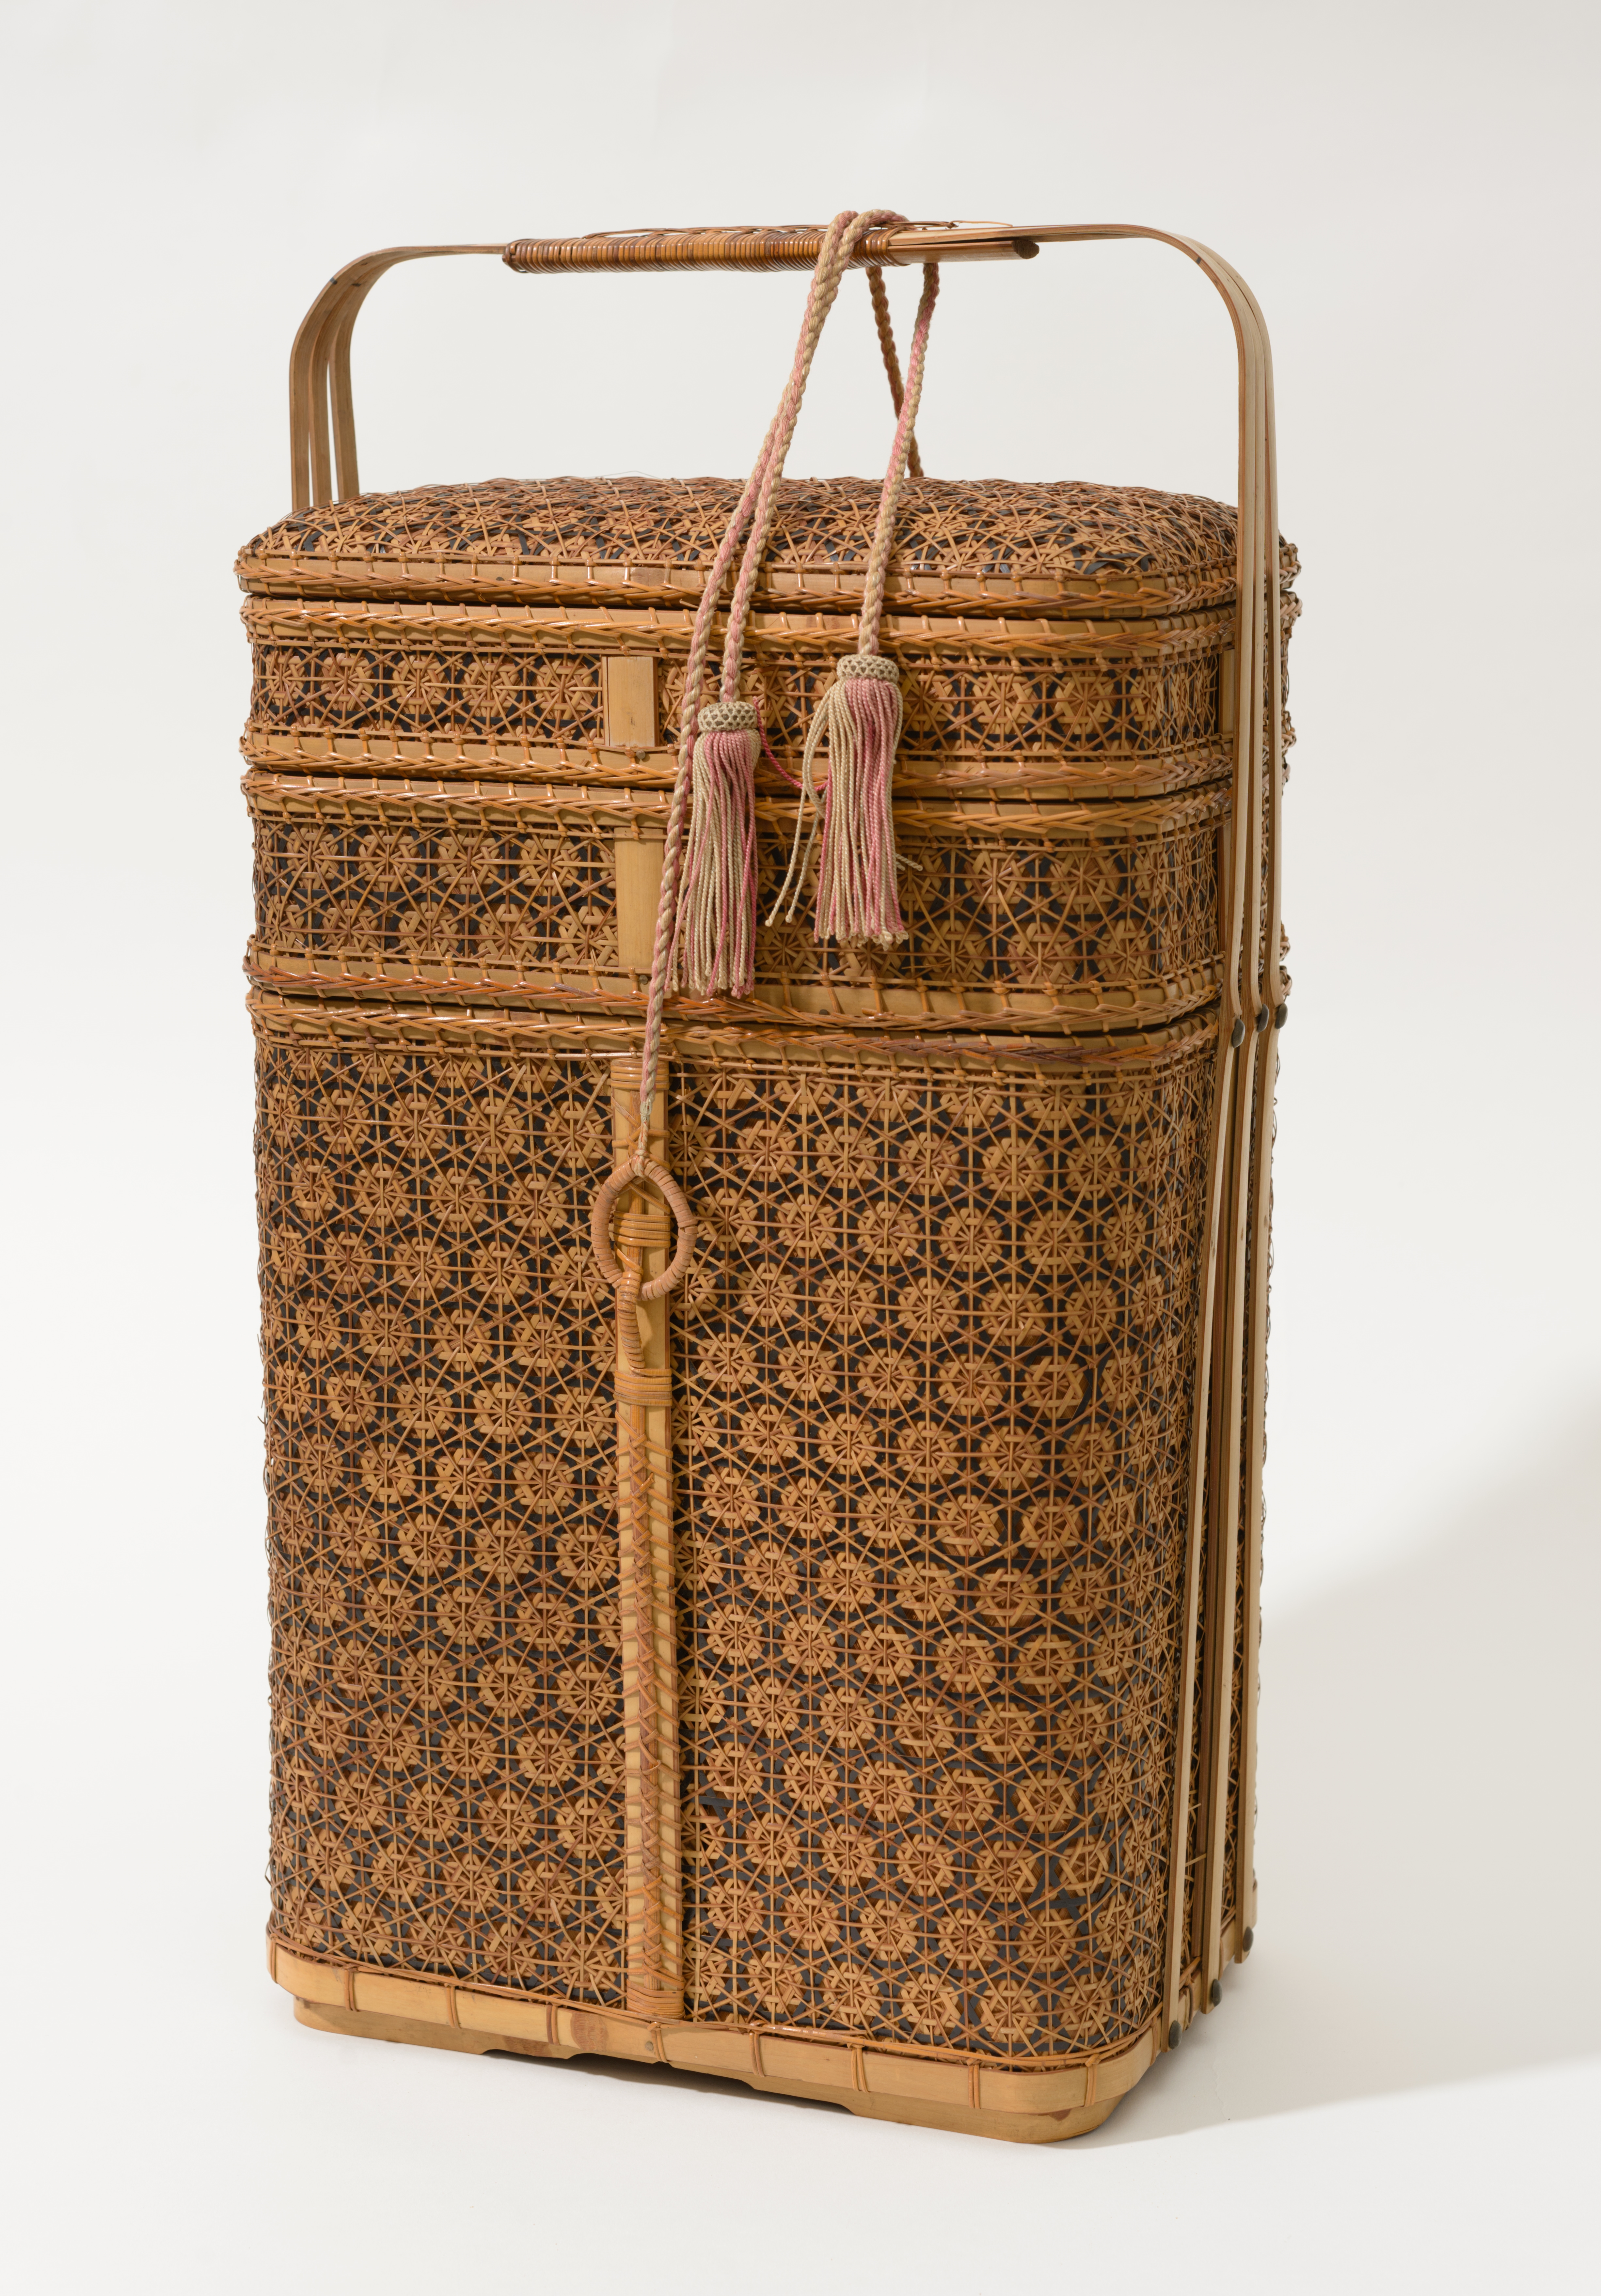 Three-tiered woven bamboo basket, with the silk tie reinstated to the repaired attachment loop. The tassel ties have been displayed looped and draped around the single handle which extends from the sides over the top of the basket.